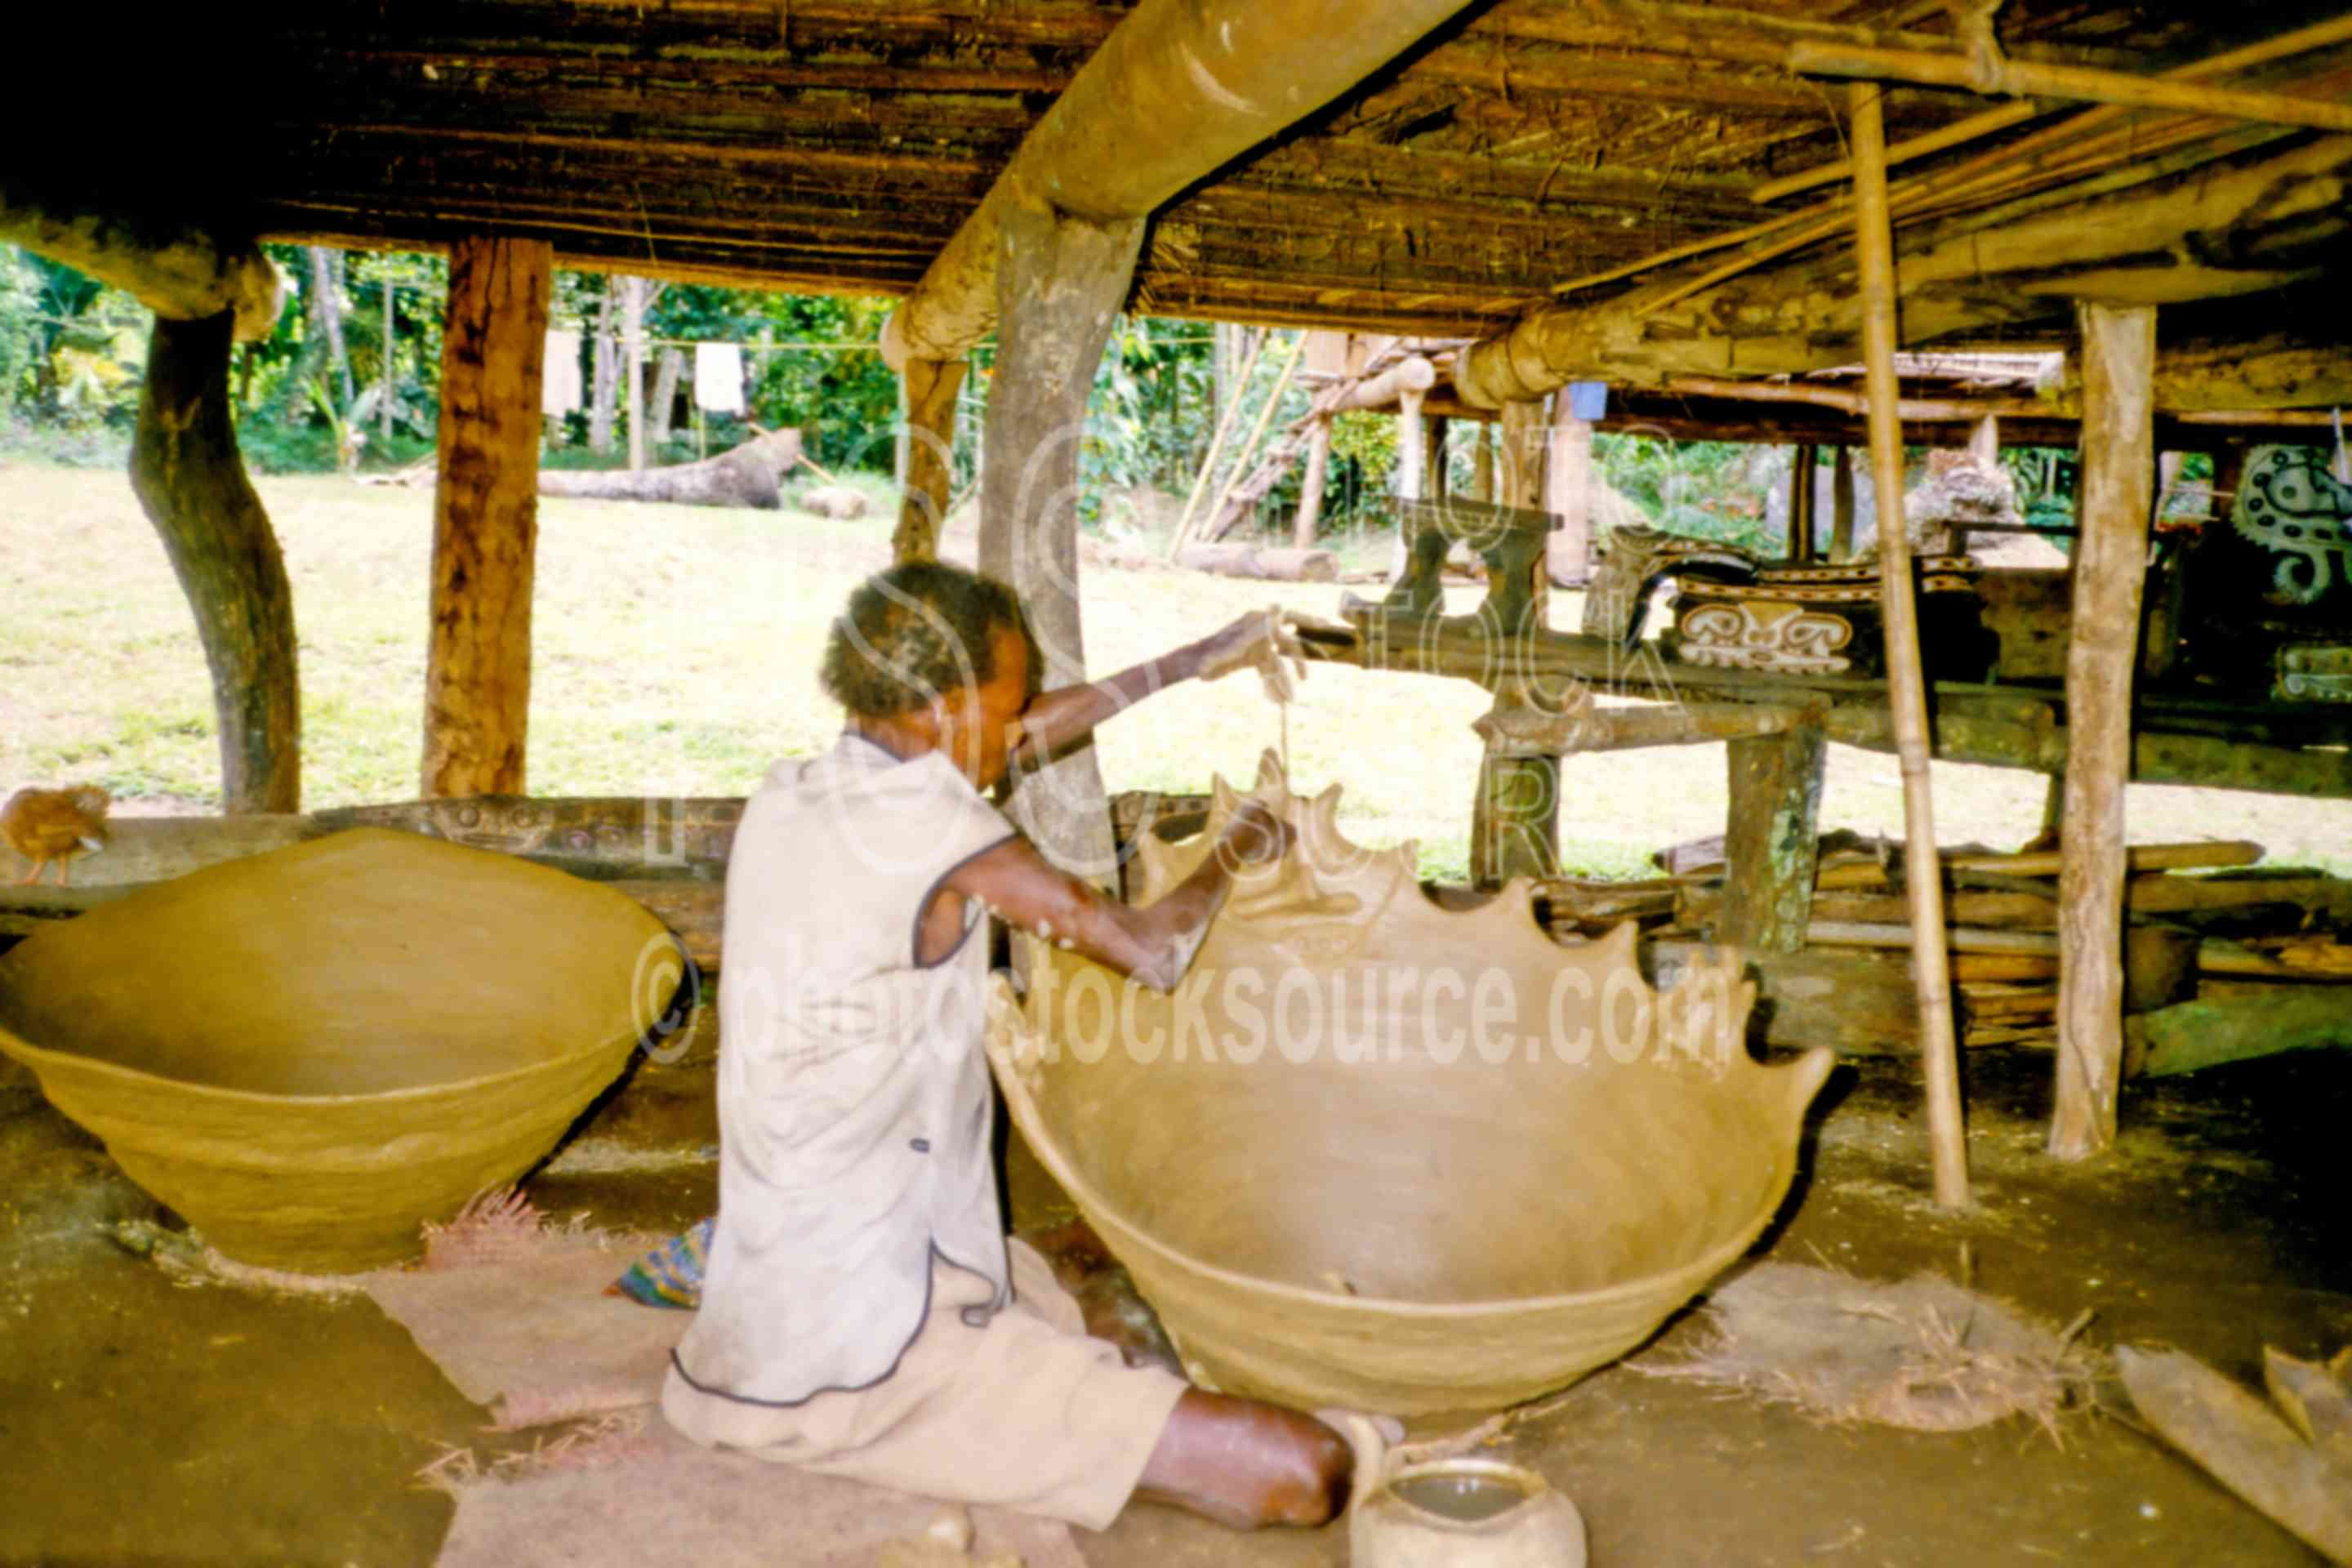 Making pottery cooking hearth,arts,craft,pots,pottery,work,worker,working,png markets